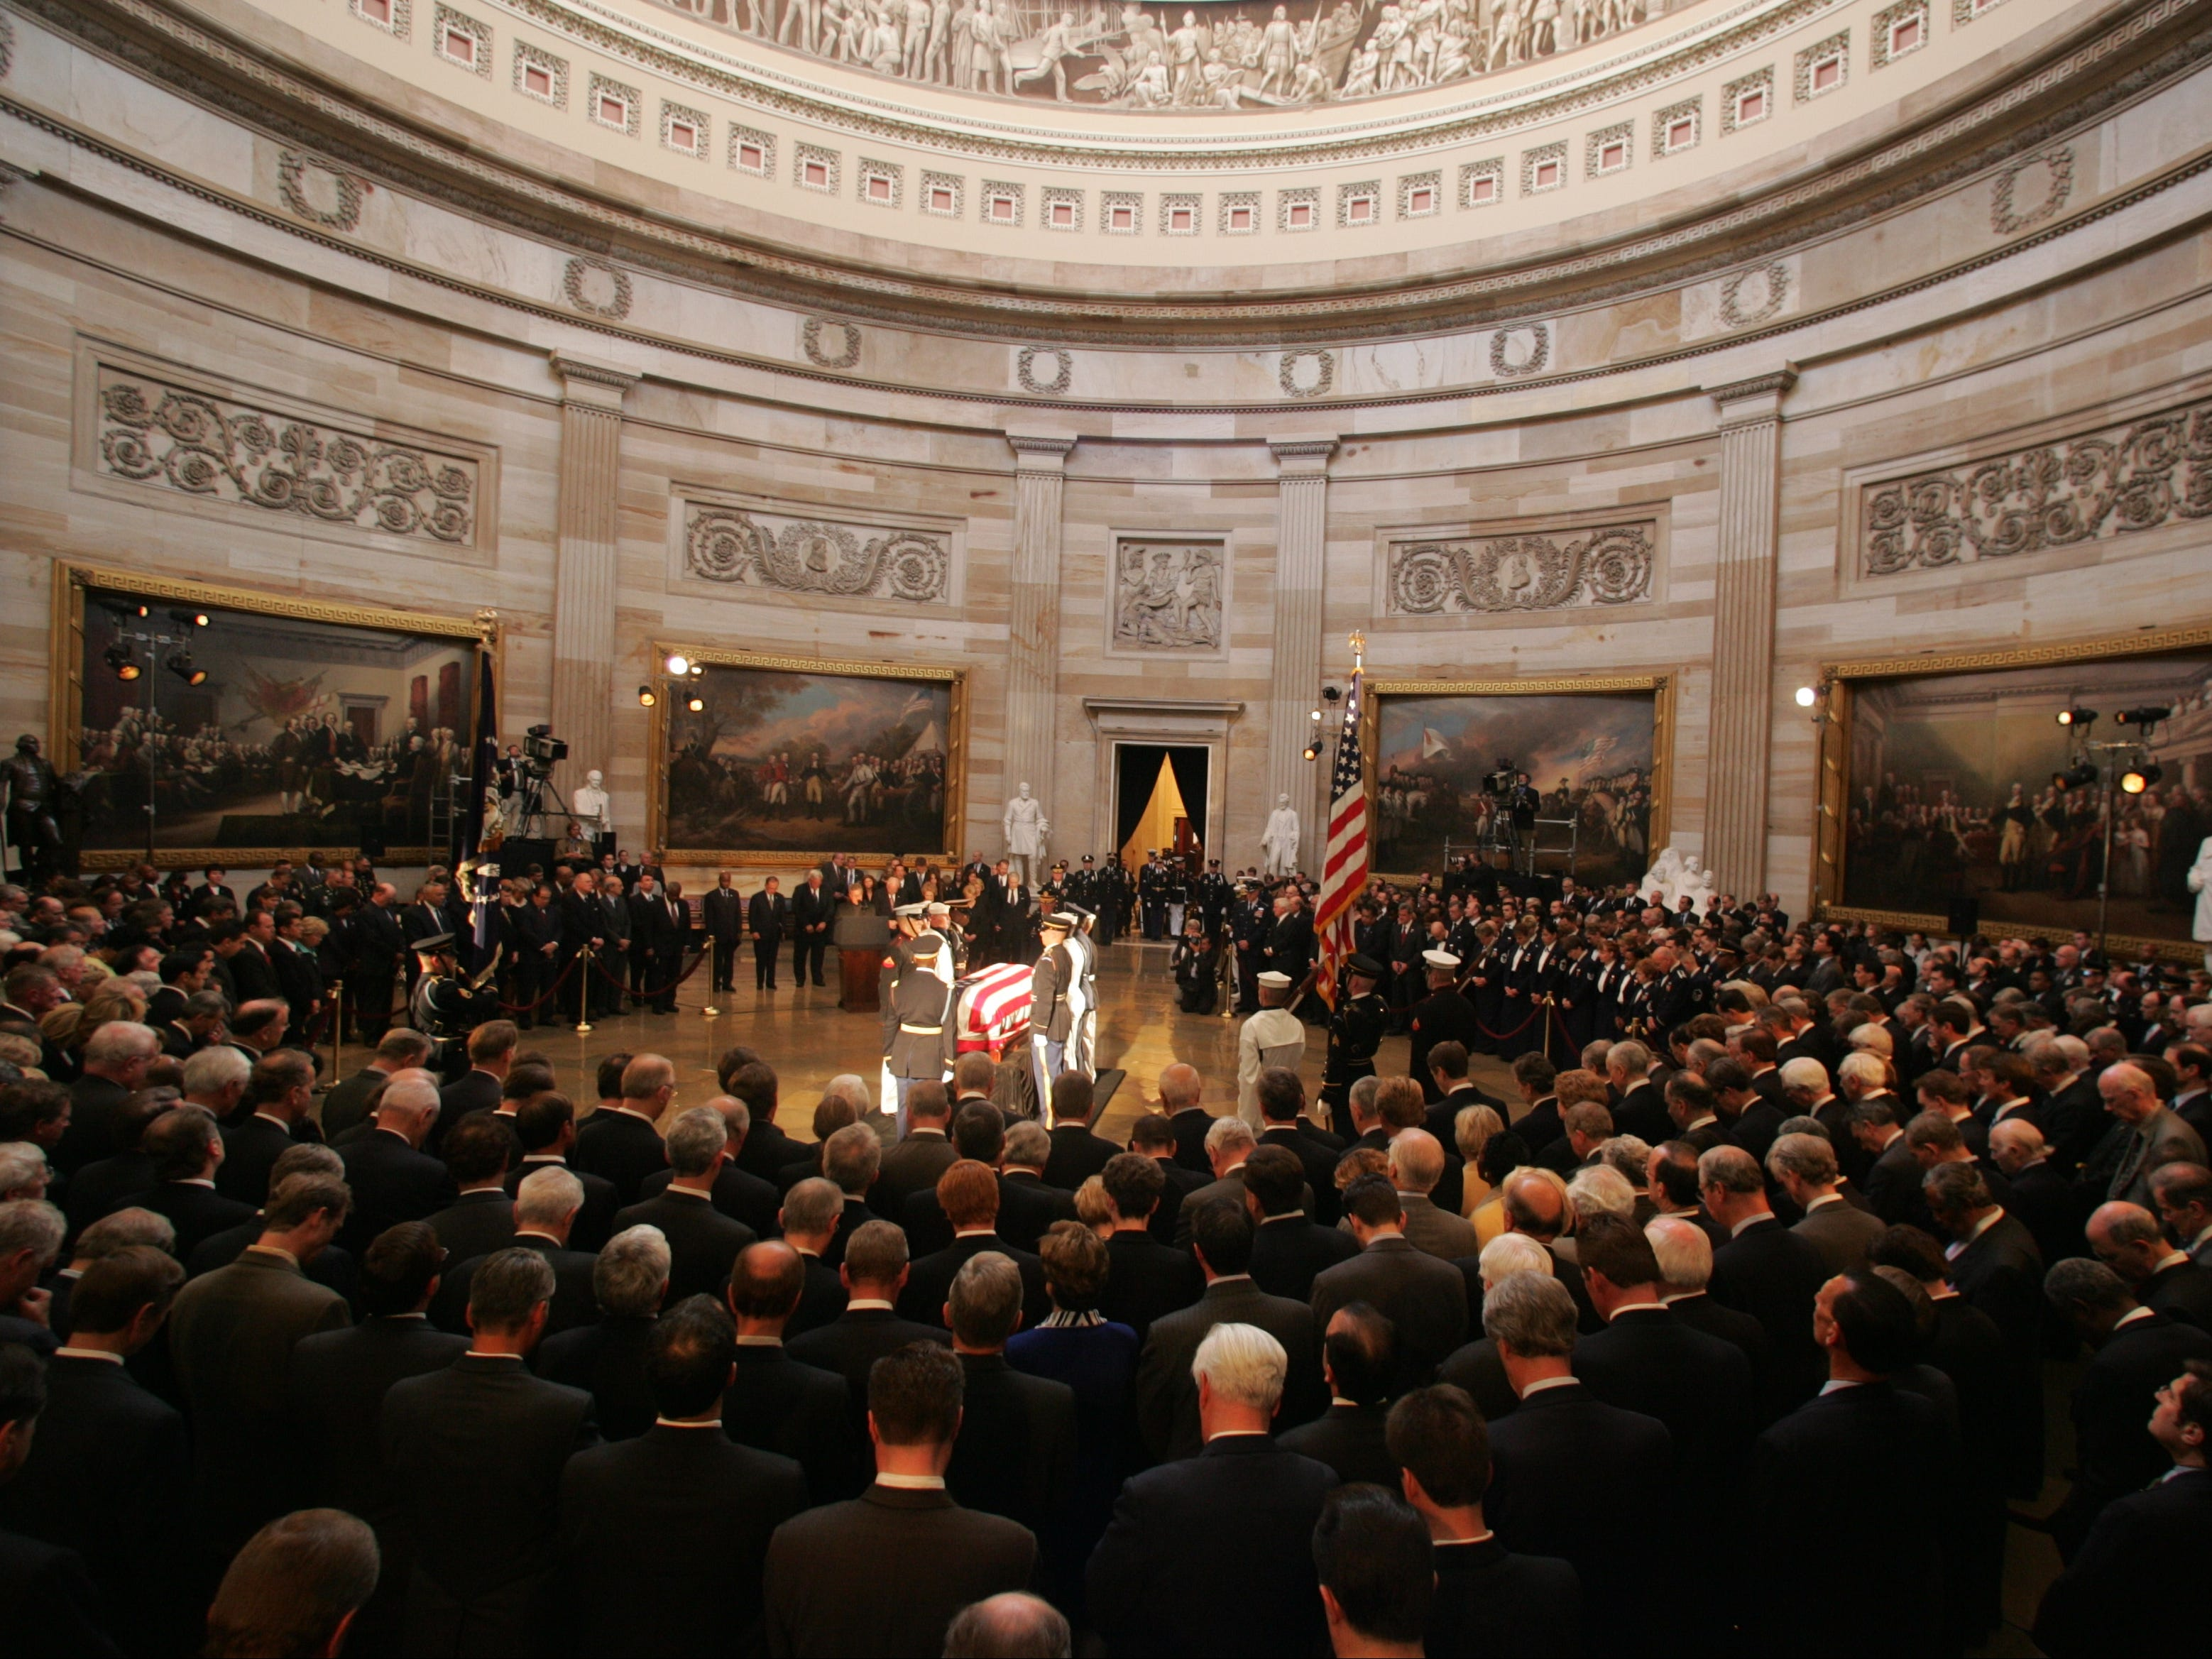 President Ronald Reagan's casket is bathed in light during a service in the Rotunda of the Capitol, June 9, 2004.